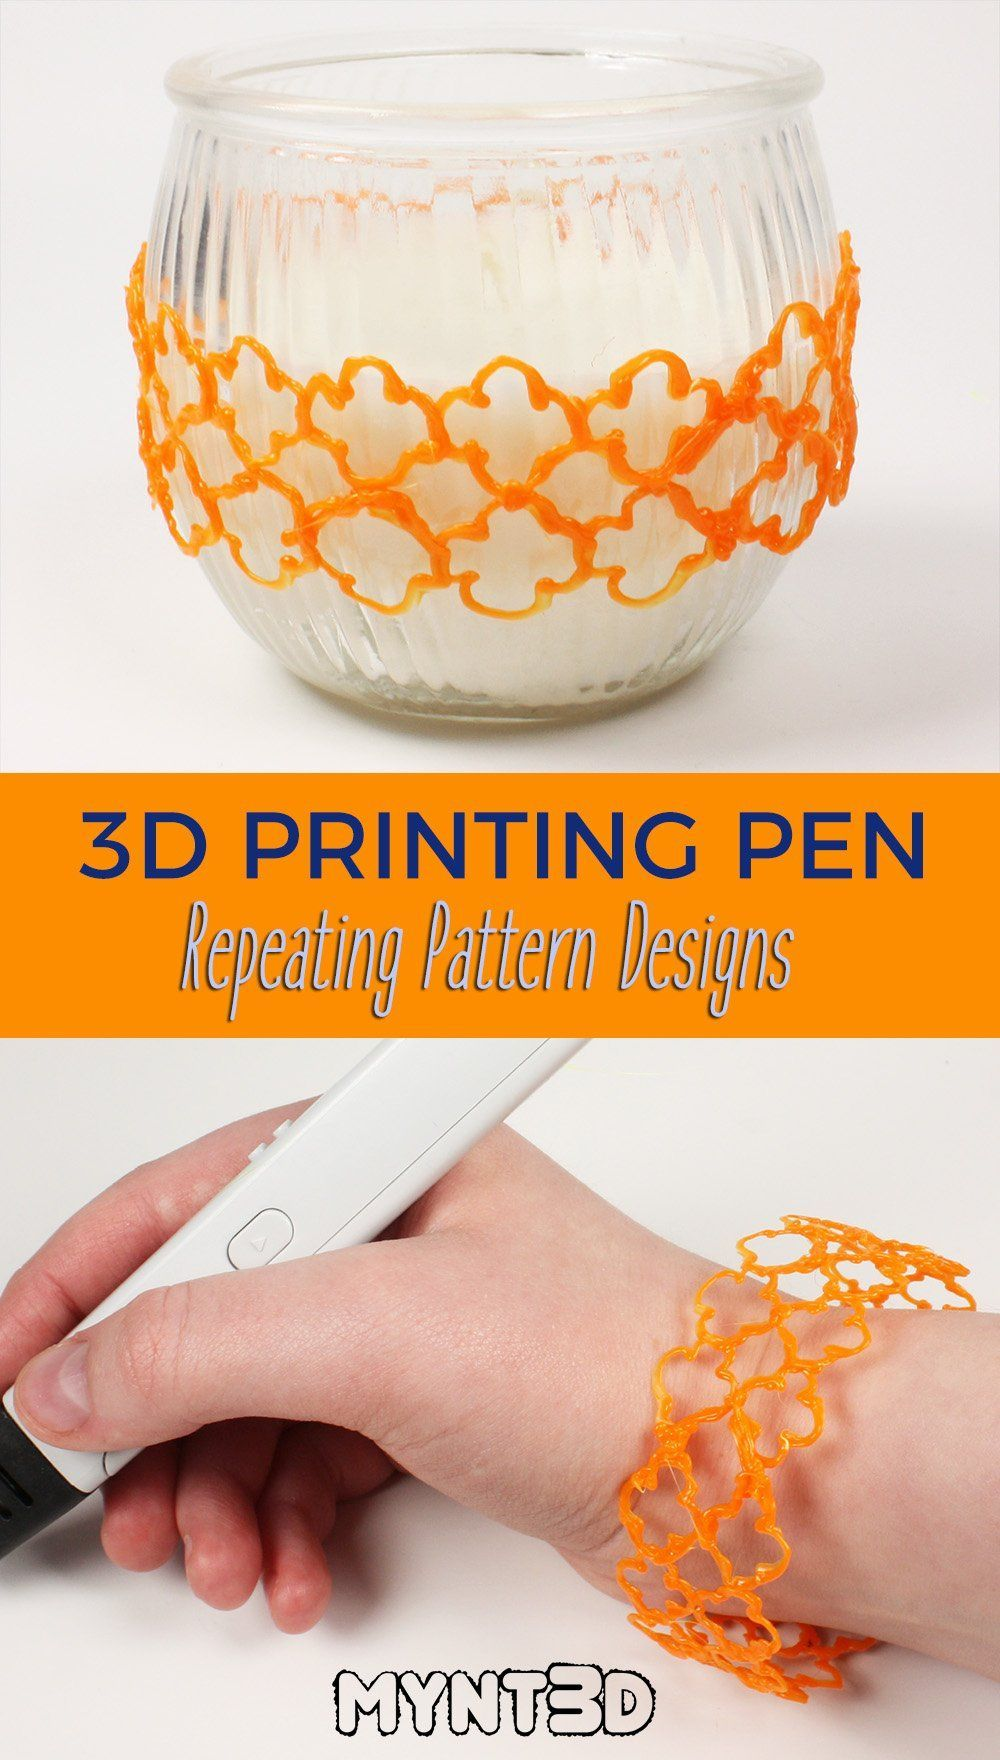 Draw 3d Pen Bracelets Vase Covers Containers And Patterned Structures With Repeat Design Pattern Templates From Mynt3d Get 3d Pen Stencils 3d Pen 3d Pen Art